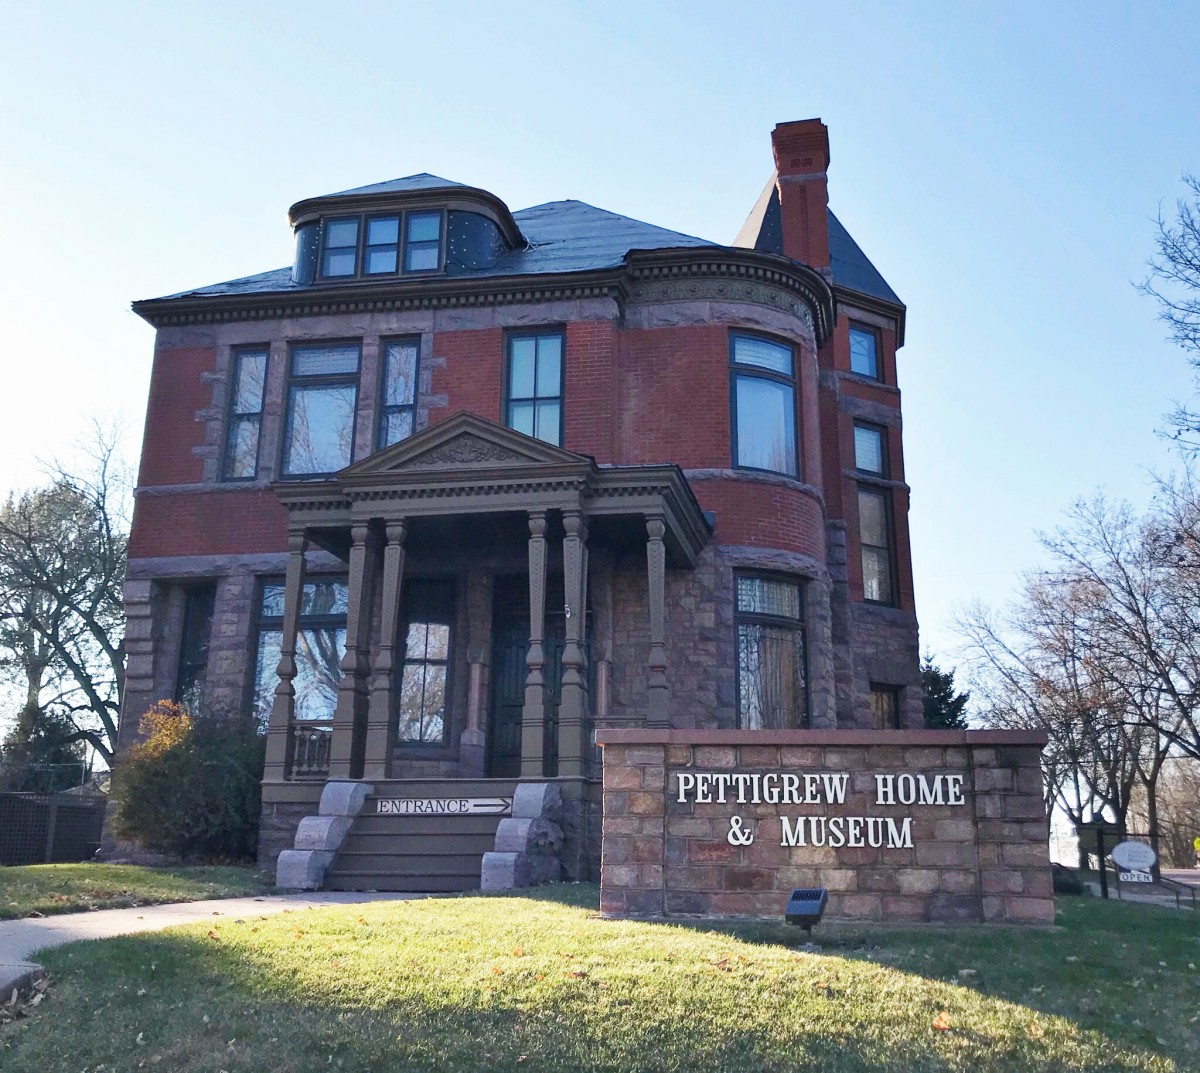 Pettigrew Home and Museum Sioux Falls Her Heartland Soul